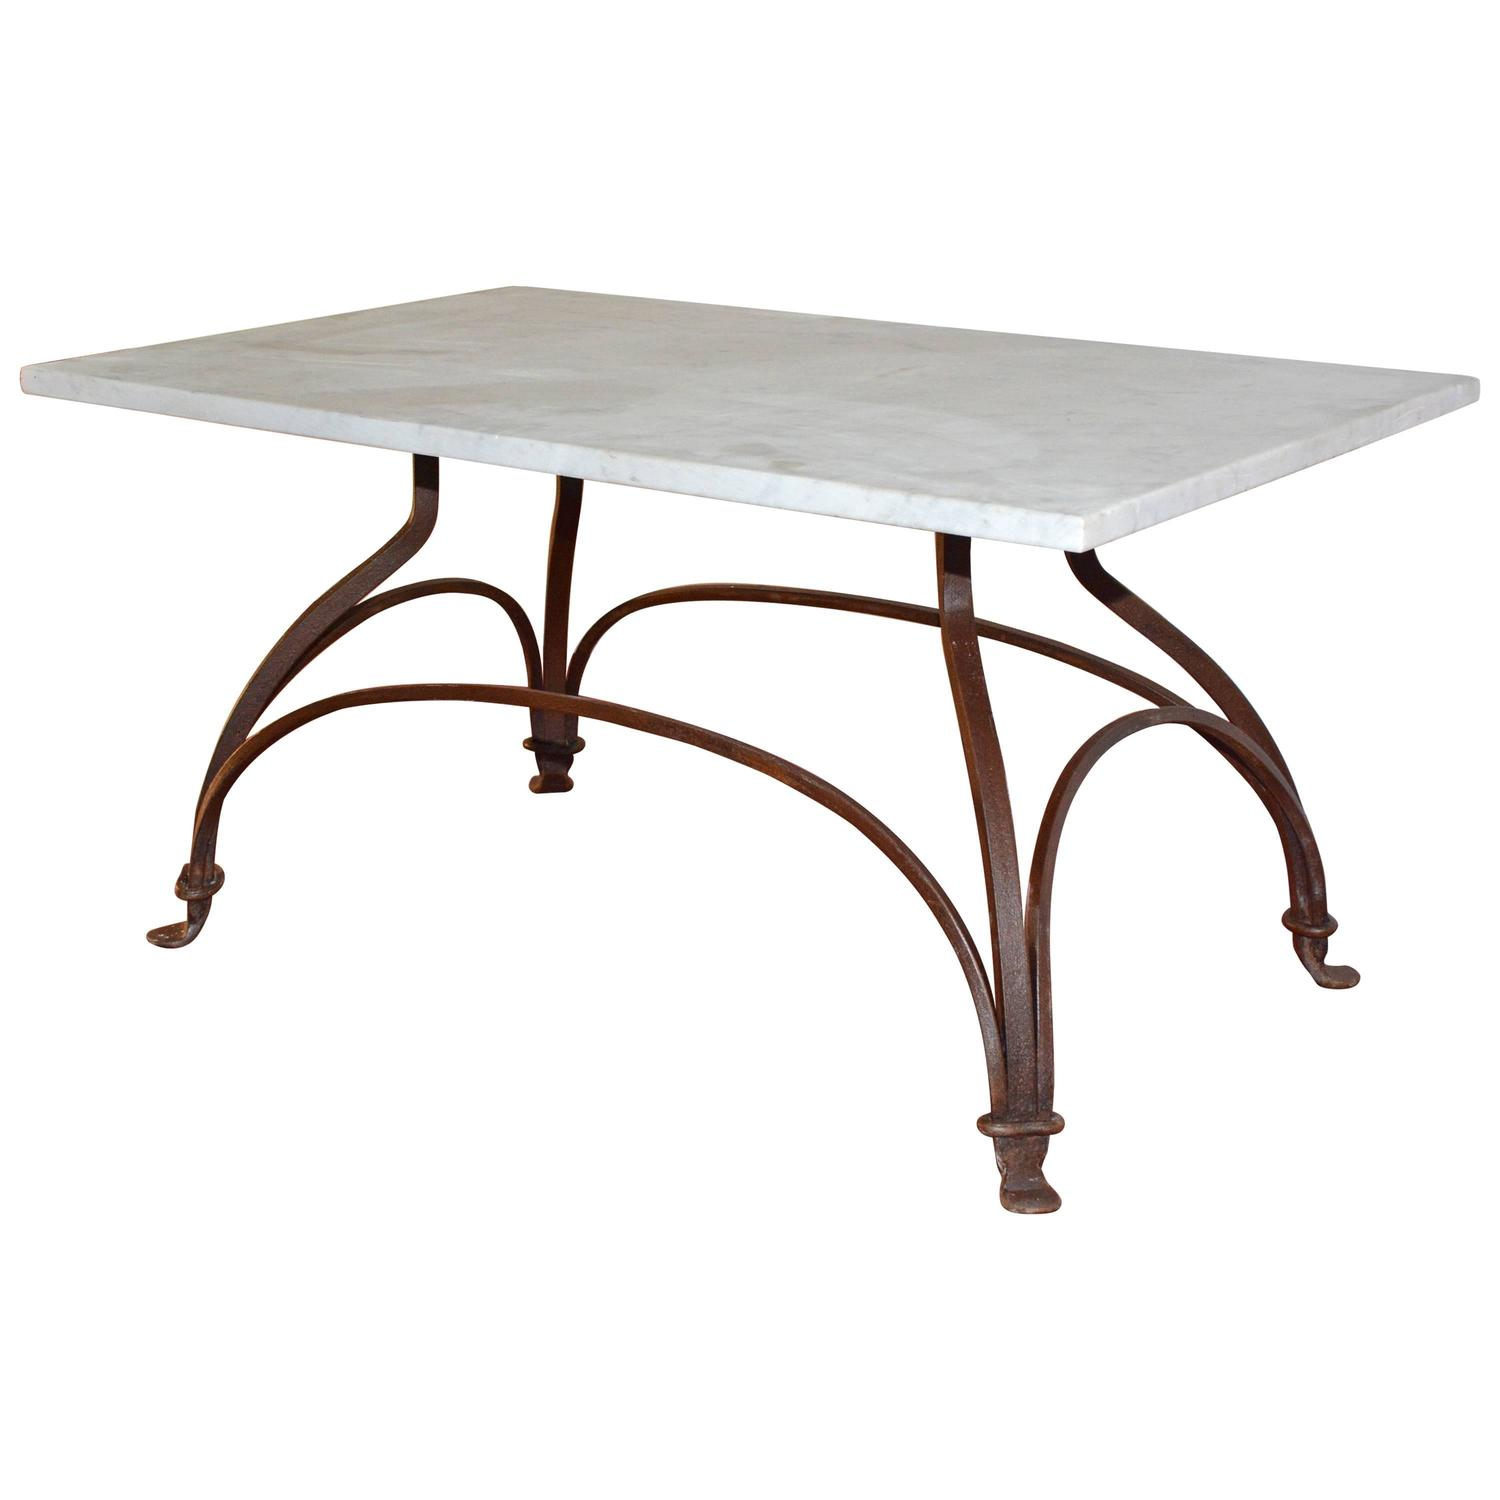 Marble and wrought iron coffee table for sale at 1stdibs Wrought iron coffee tables